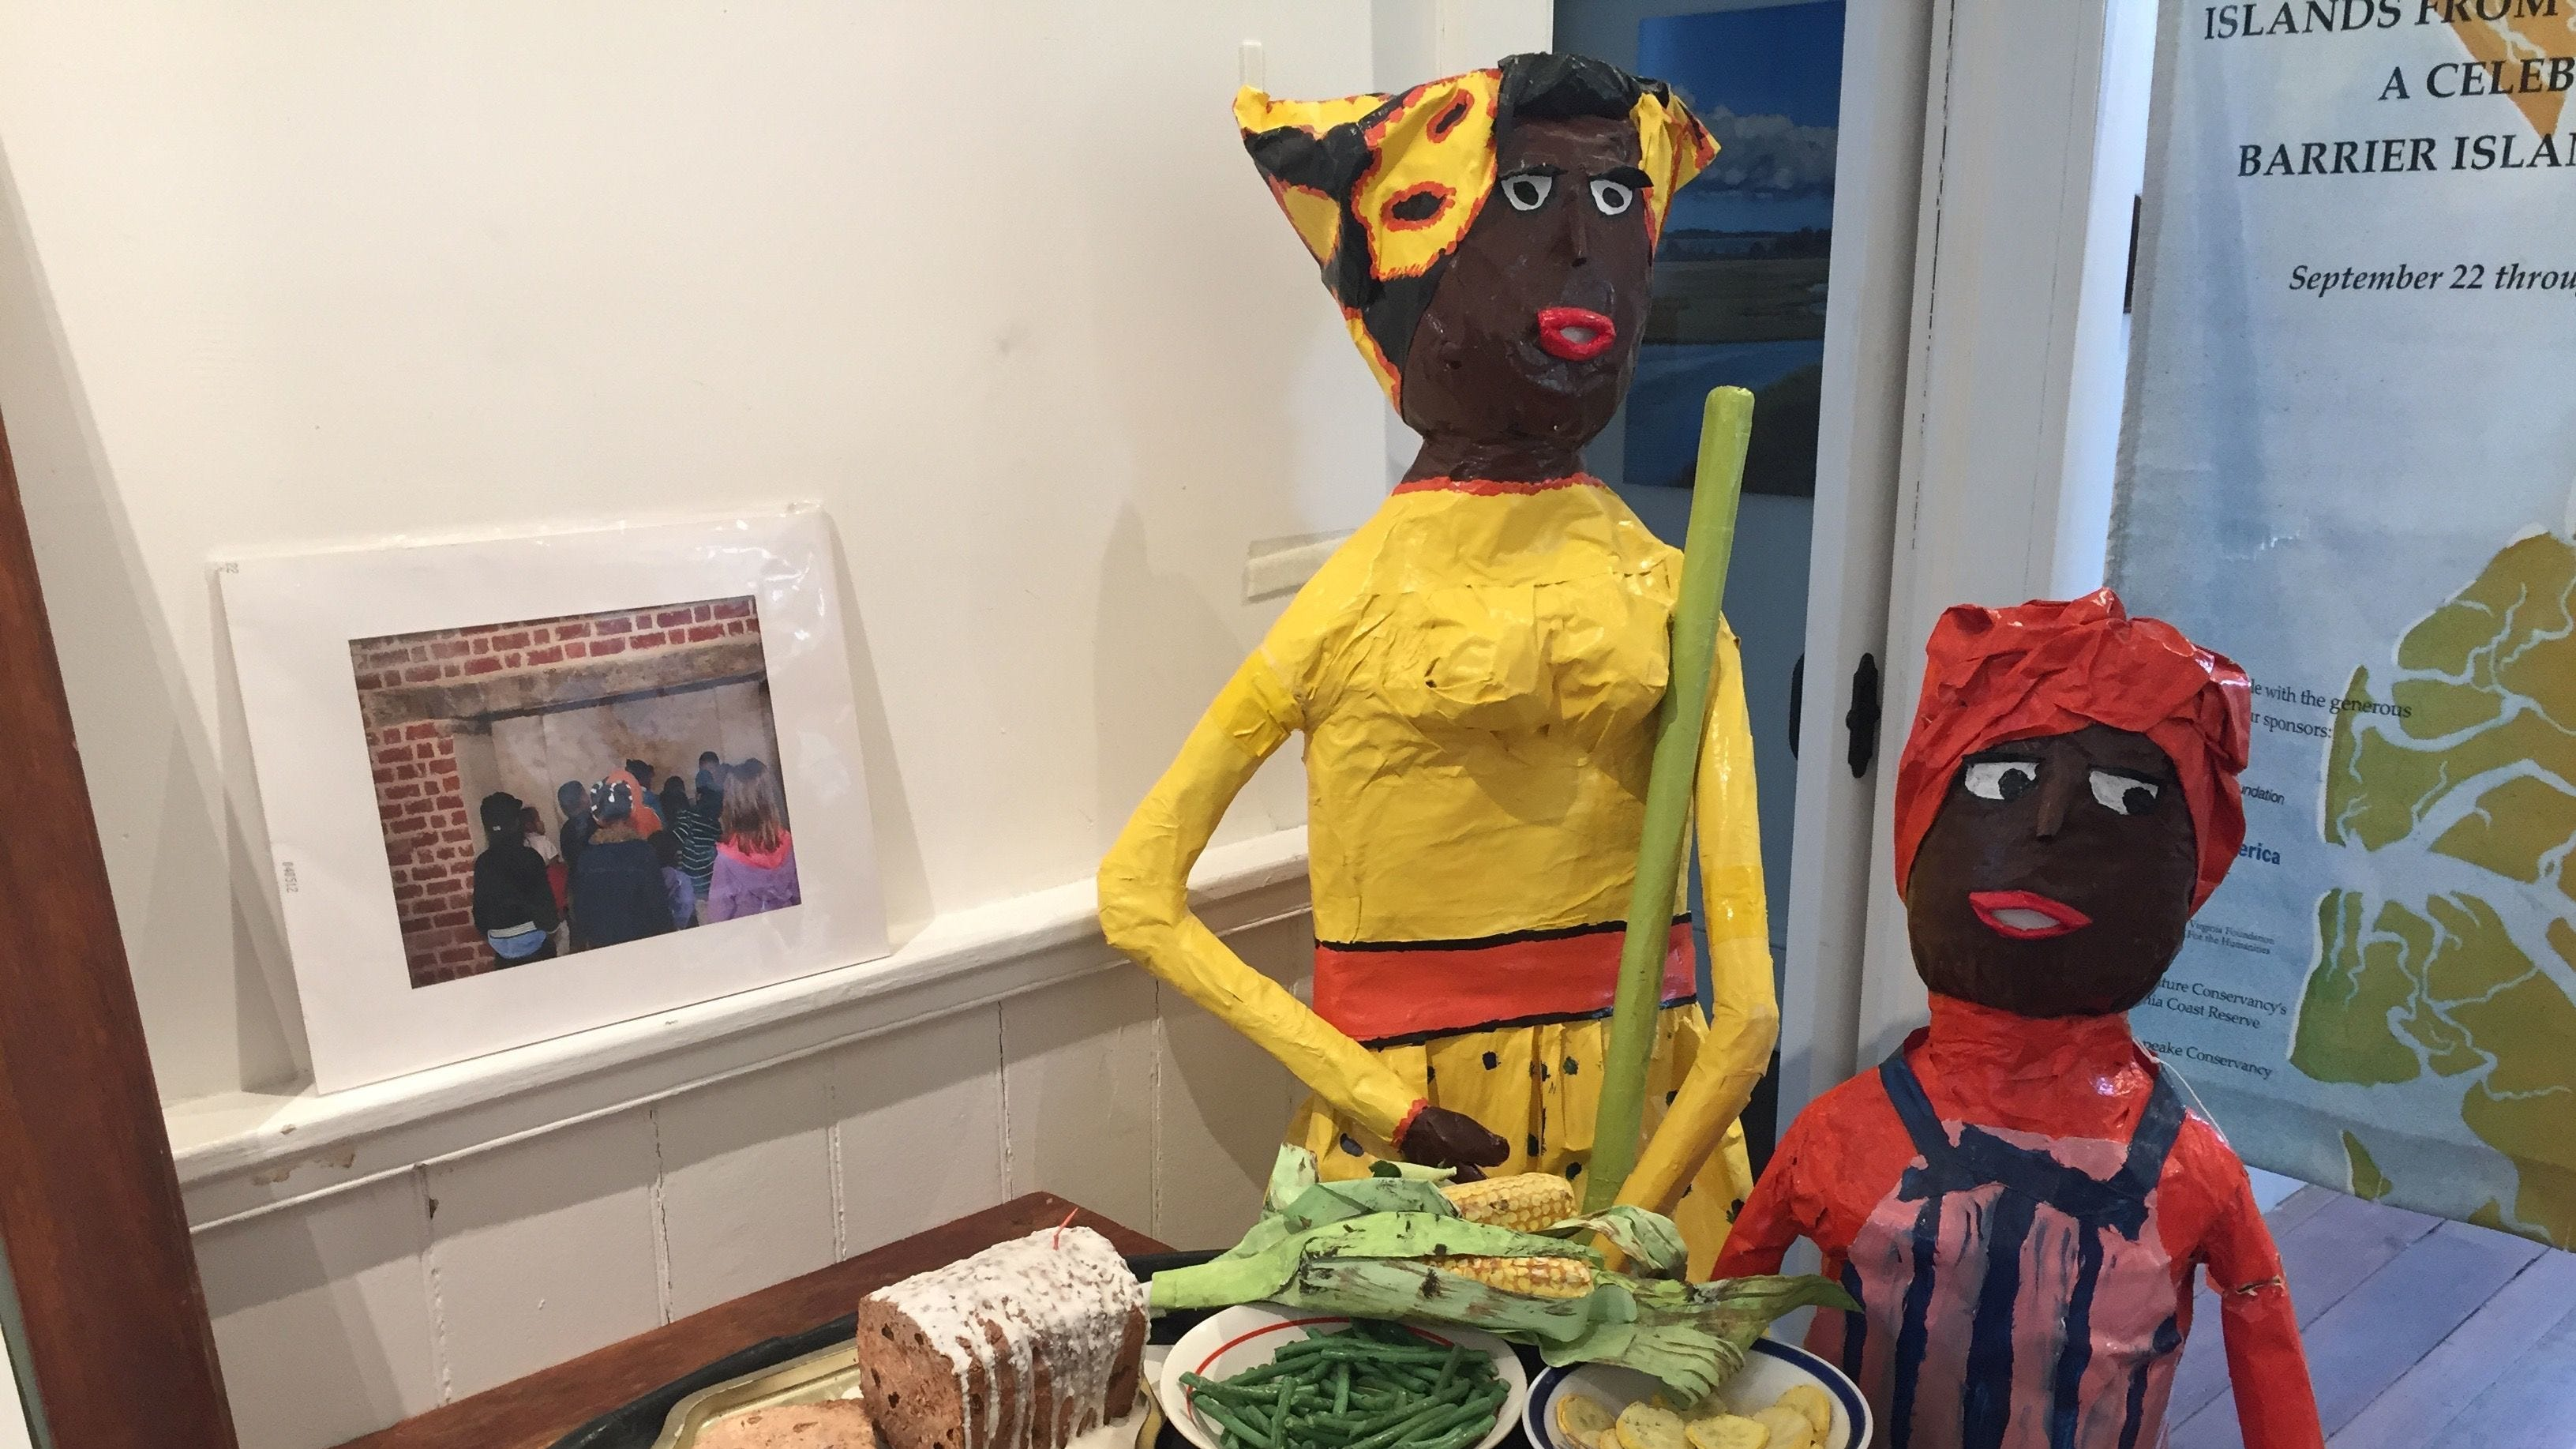 Elements of a traditional Hog Island picnic, along with sculptures made by folk artist Mama Girl, on display at the Barrier Islands Center in Machipongo.